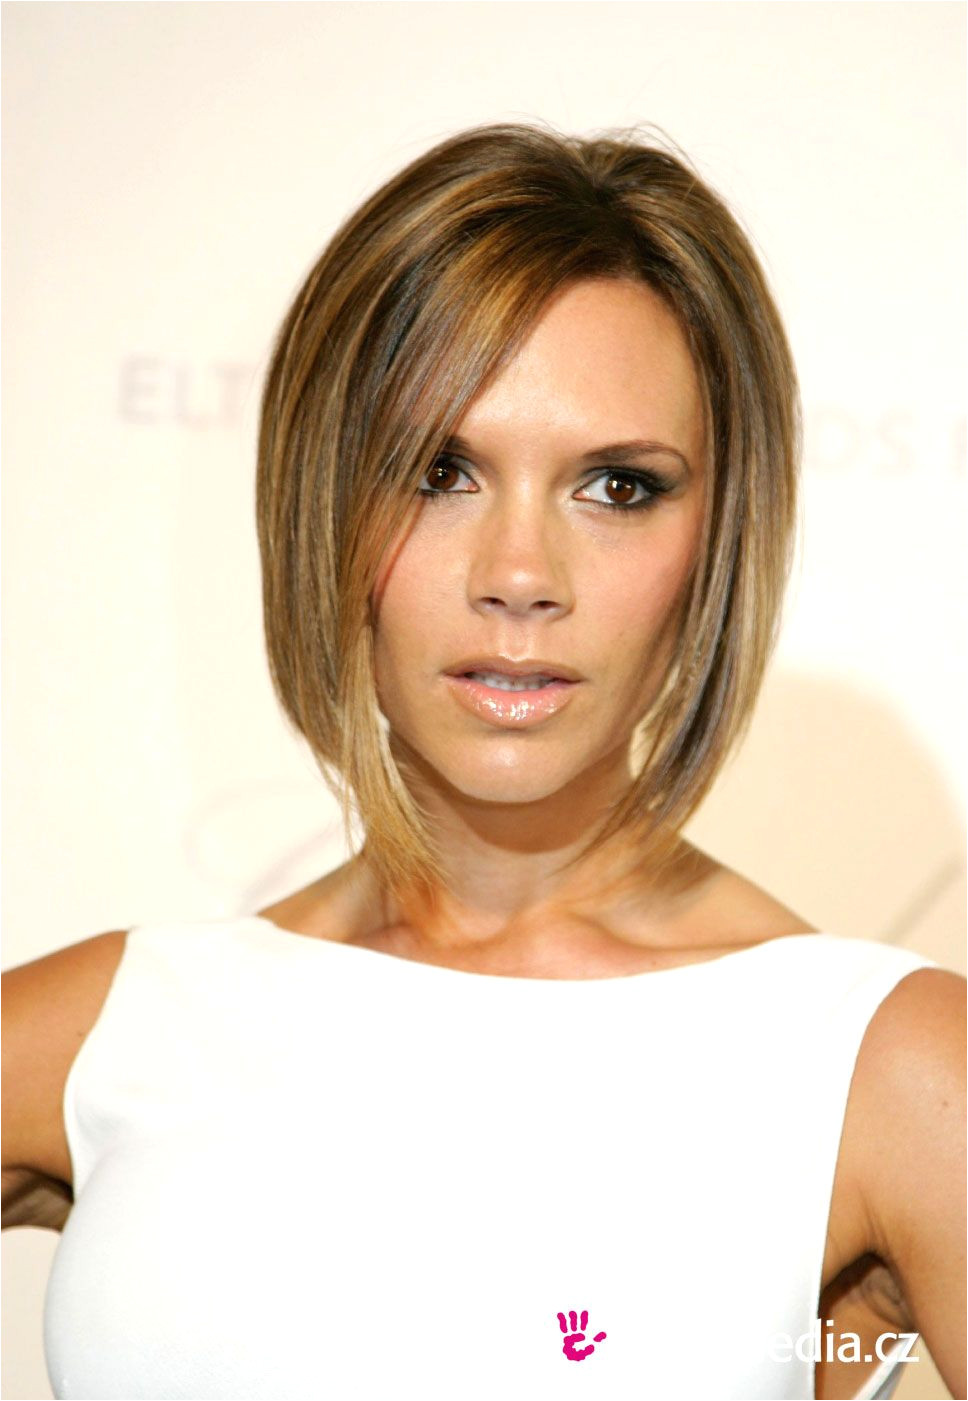 Victoria Beckham Hairstyle Simple Hairstyle Ideas For Women and Man